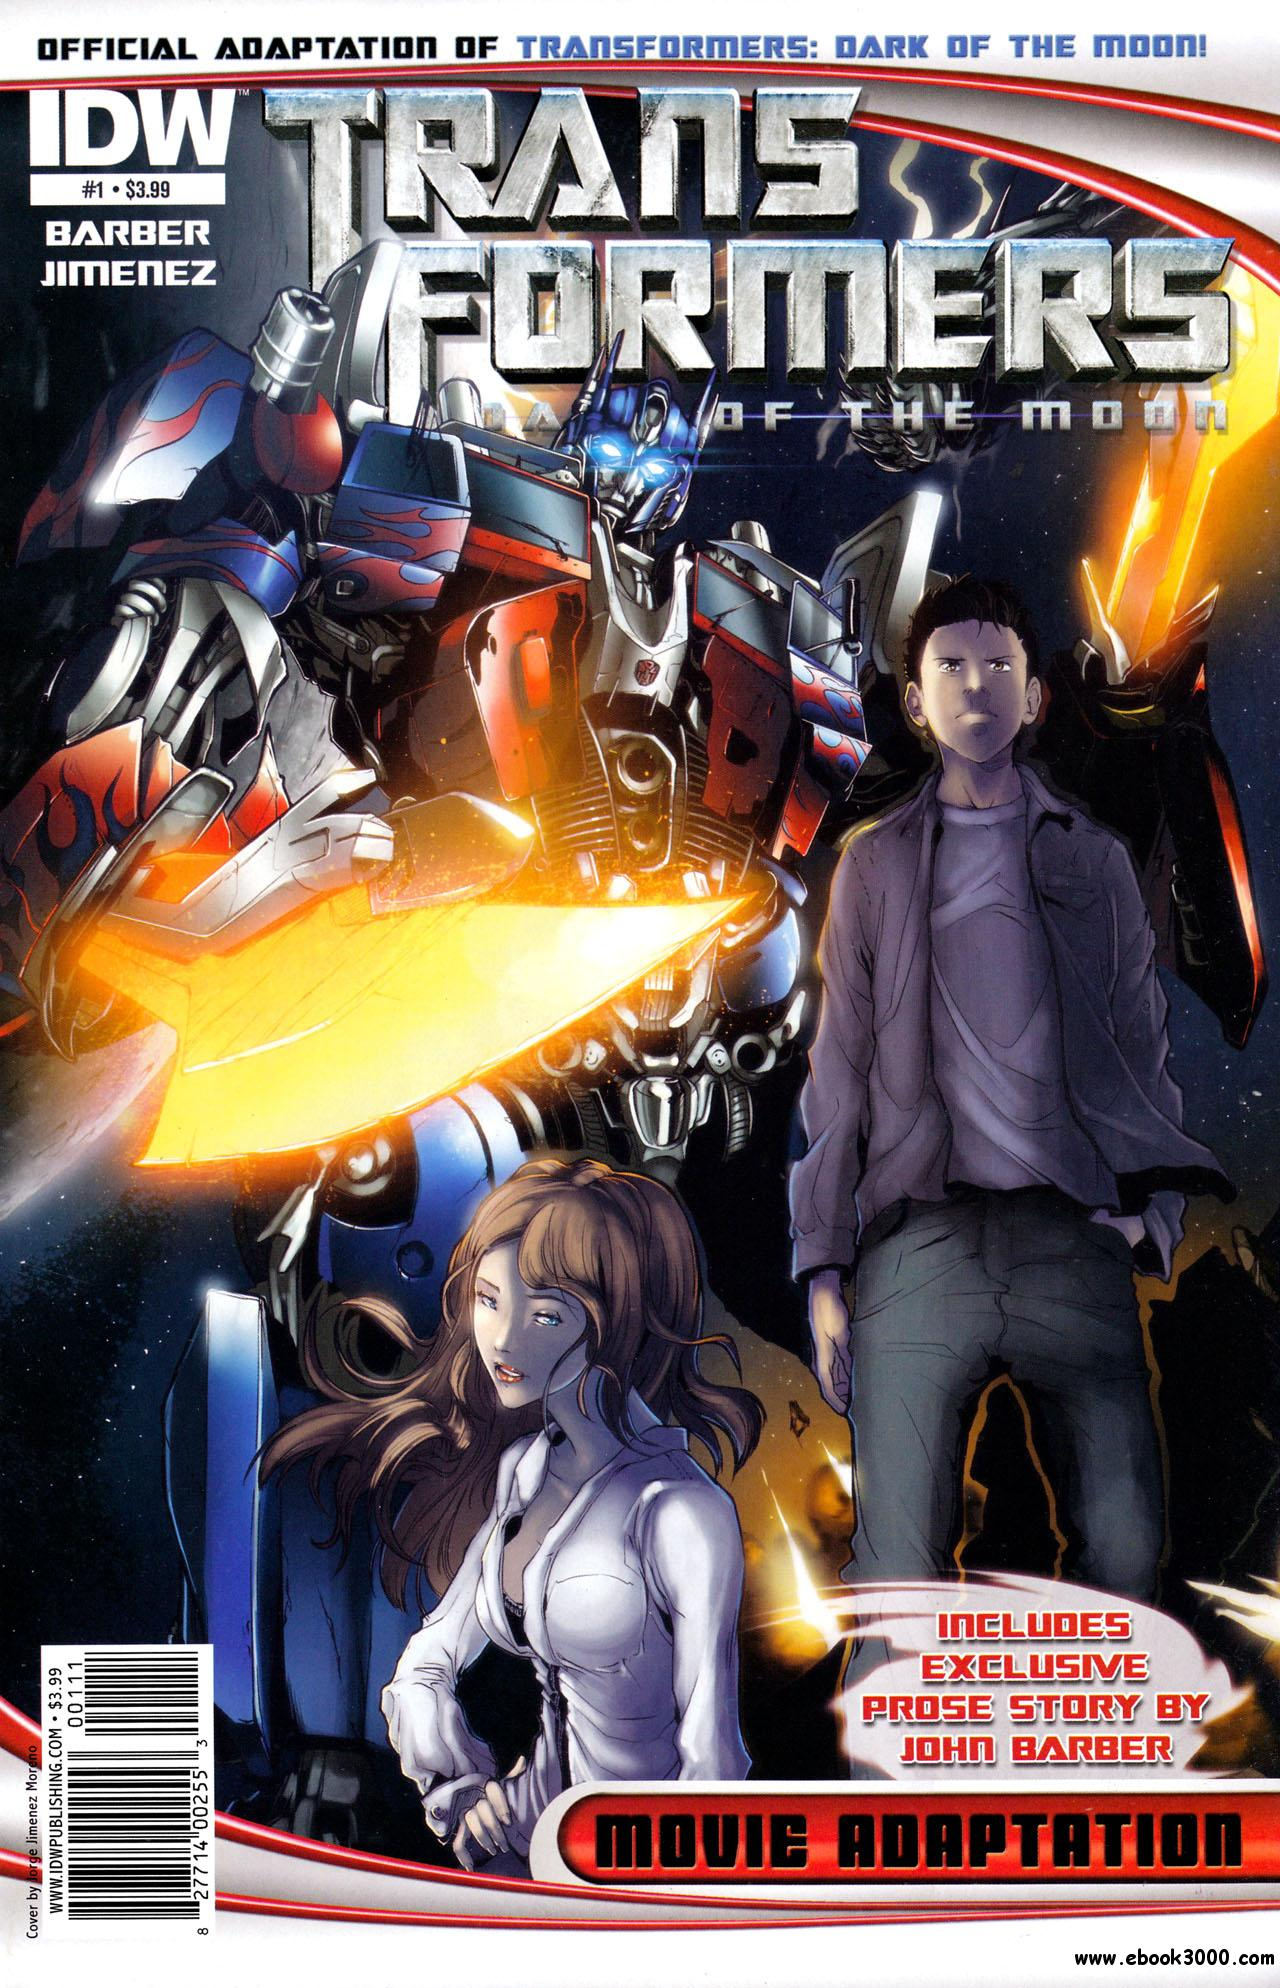 Transformers: Dark of the Moon Movie Adaptation #1-4 [complete] free download